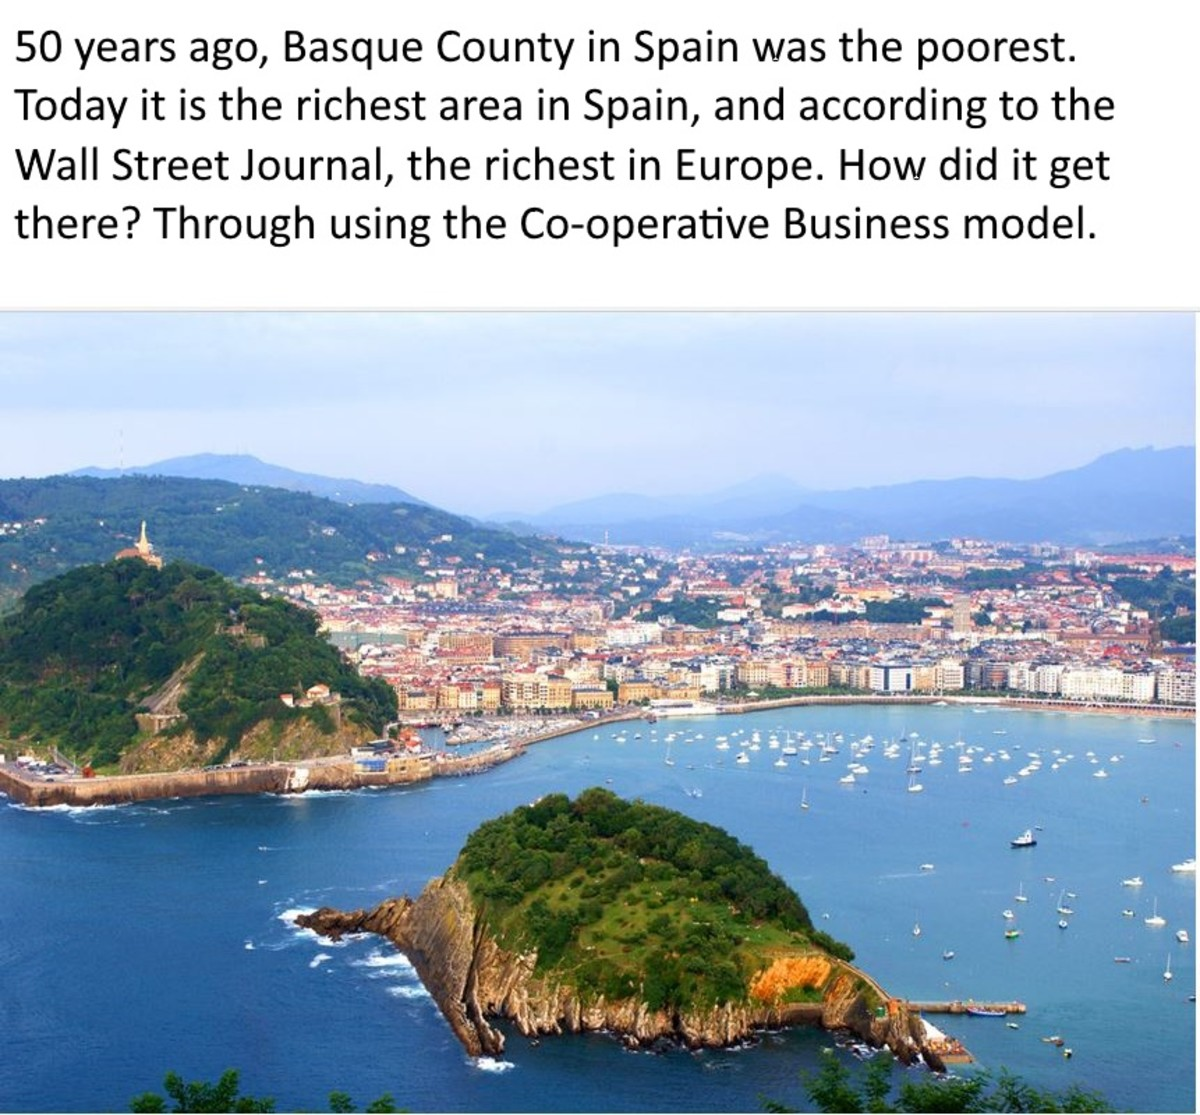 The co-operative business model transformed the Basque region from the poorest area of Spain to the wealthiest area in less than 50 years. A reporter with WSJ noted that today the Basque region of Spain was probably the wealthiest in the Europe Union